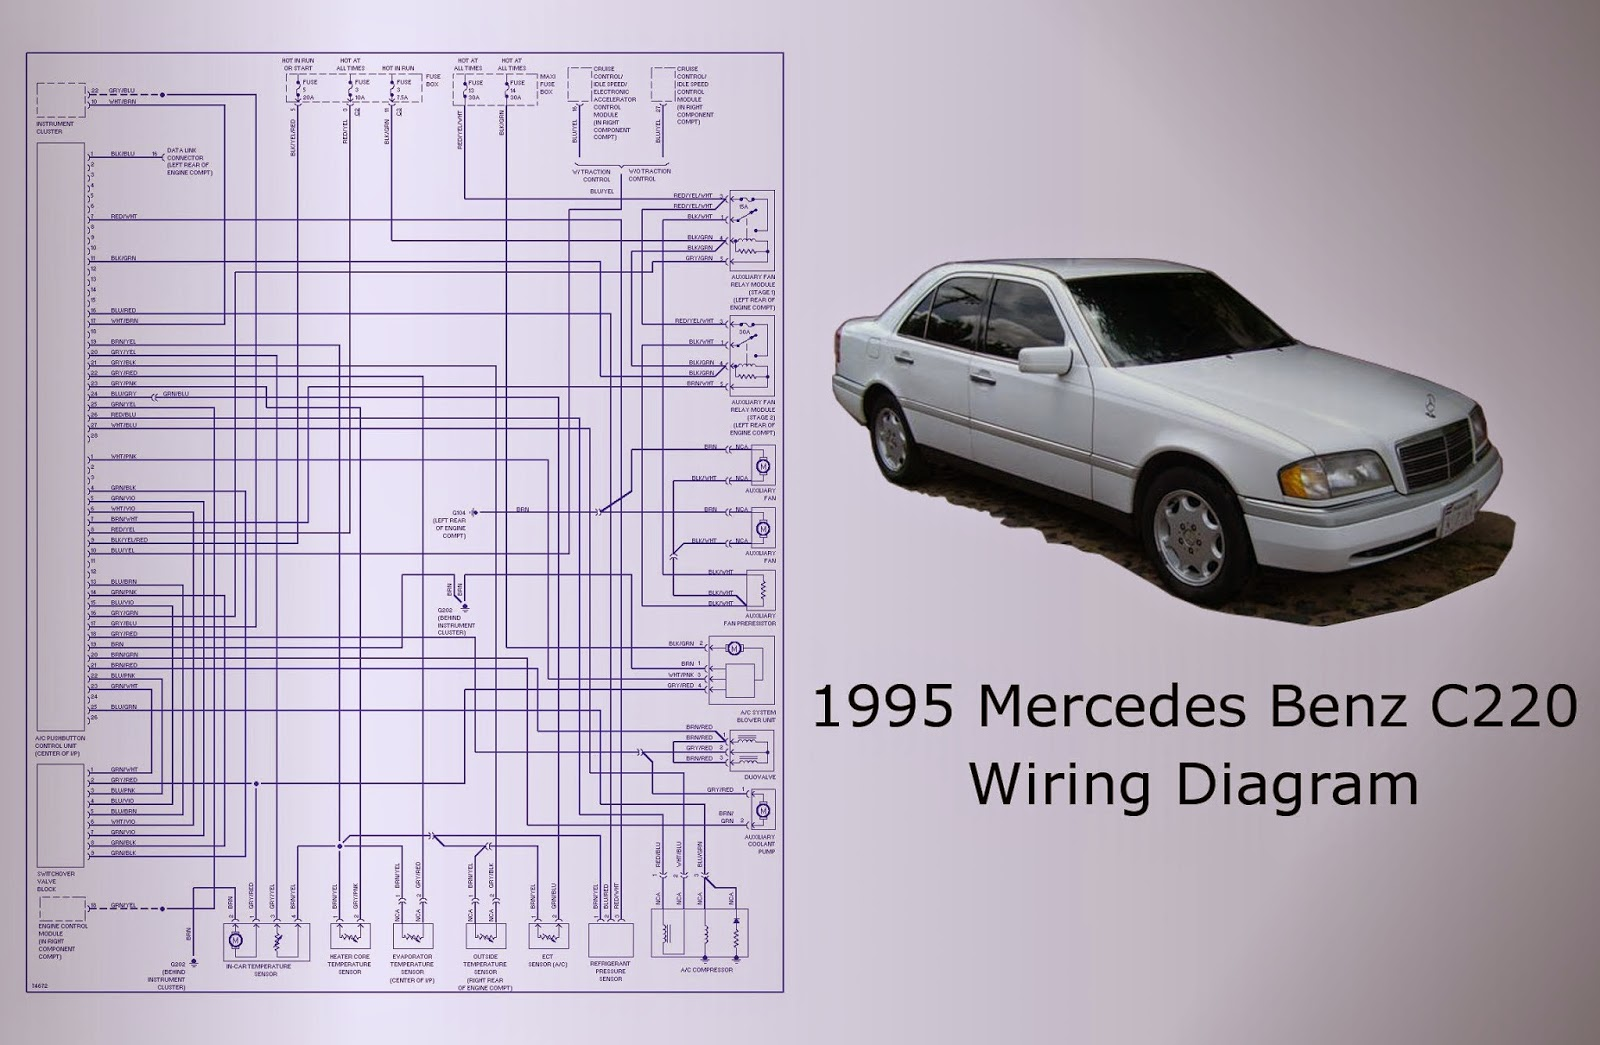 small resolution of 1995 mercedes benz c220 wiring diagram auto wiring diagrams mercedes benz wiring diagram mercedes benz wiring